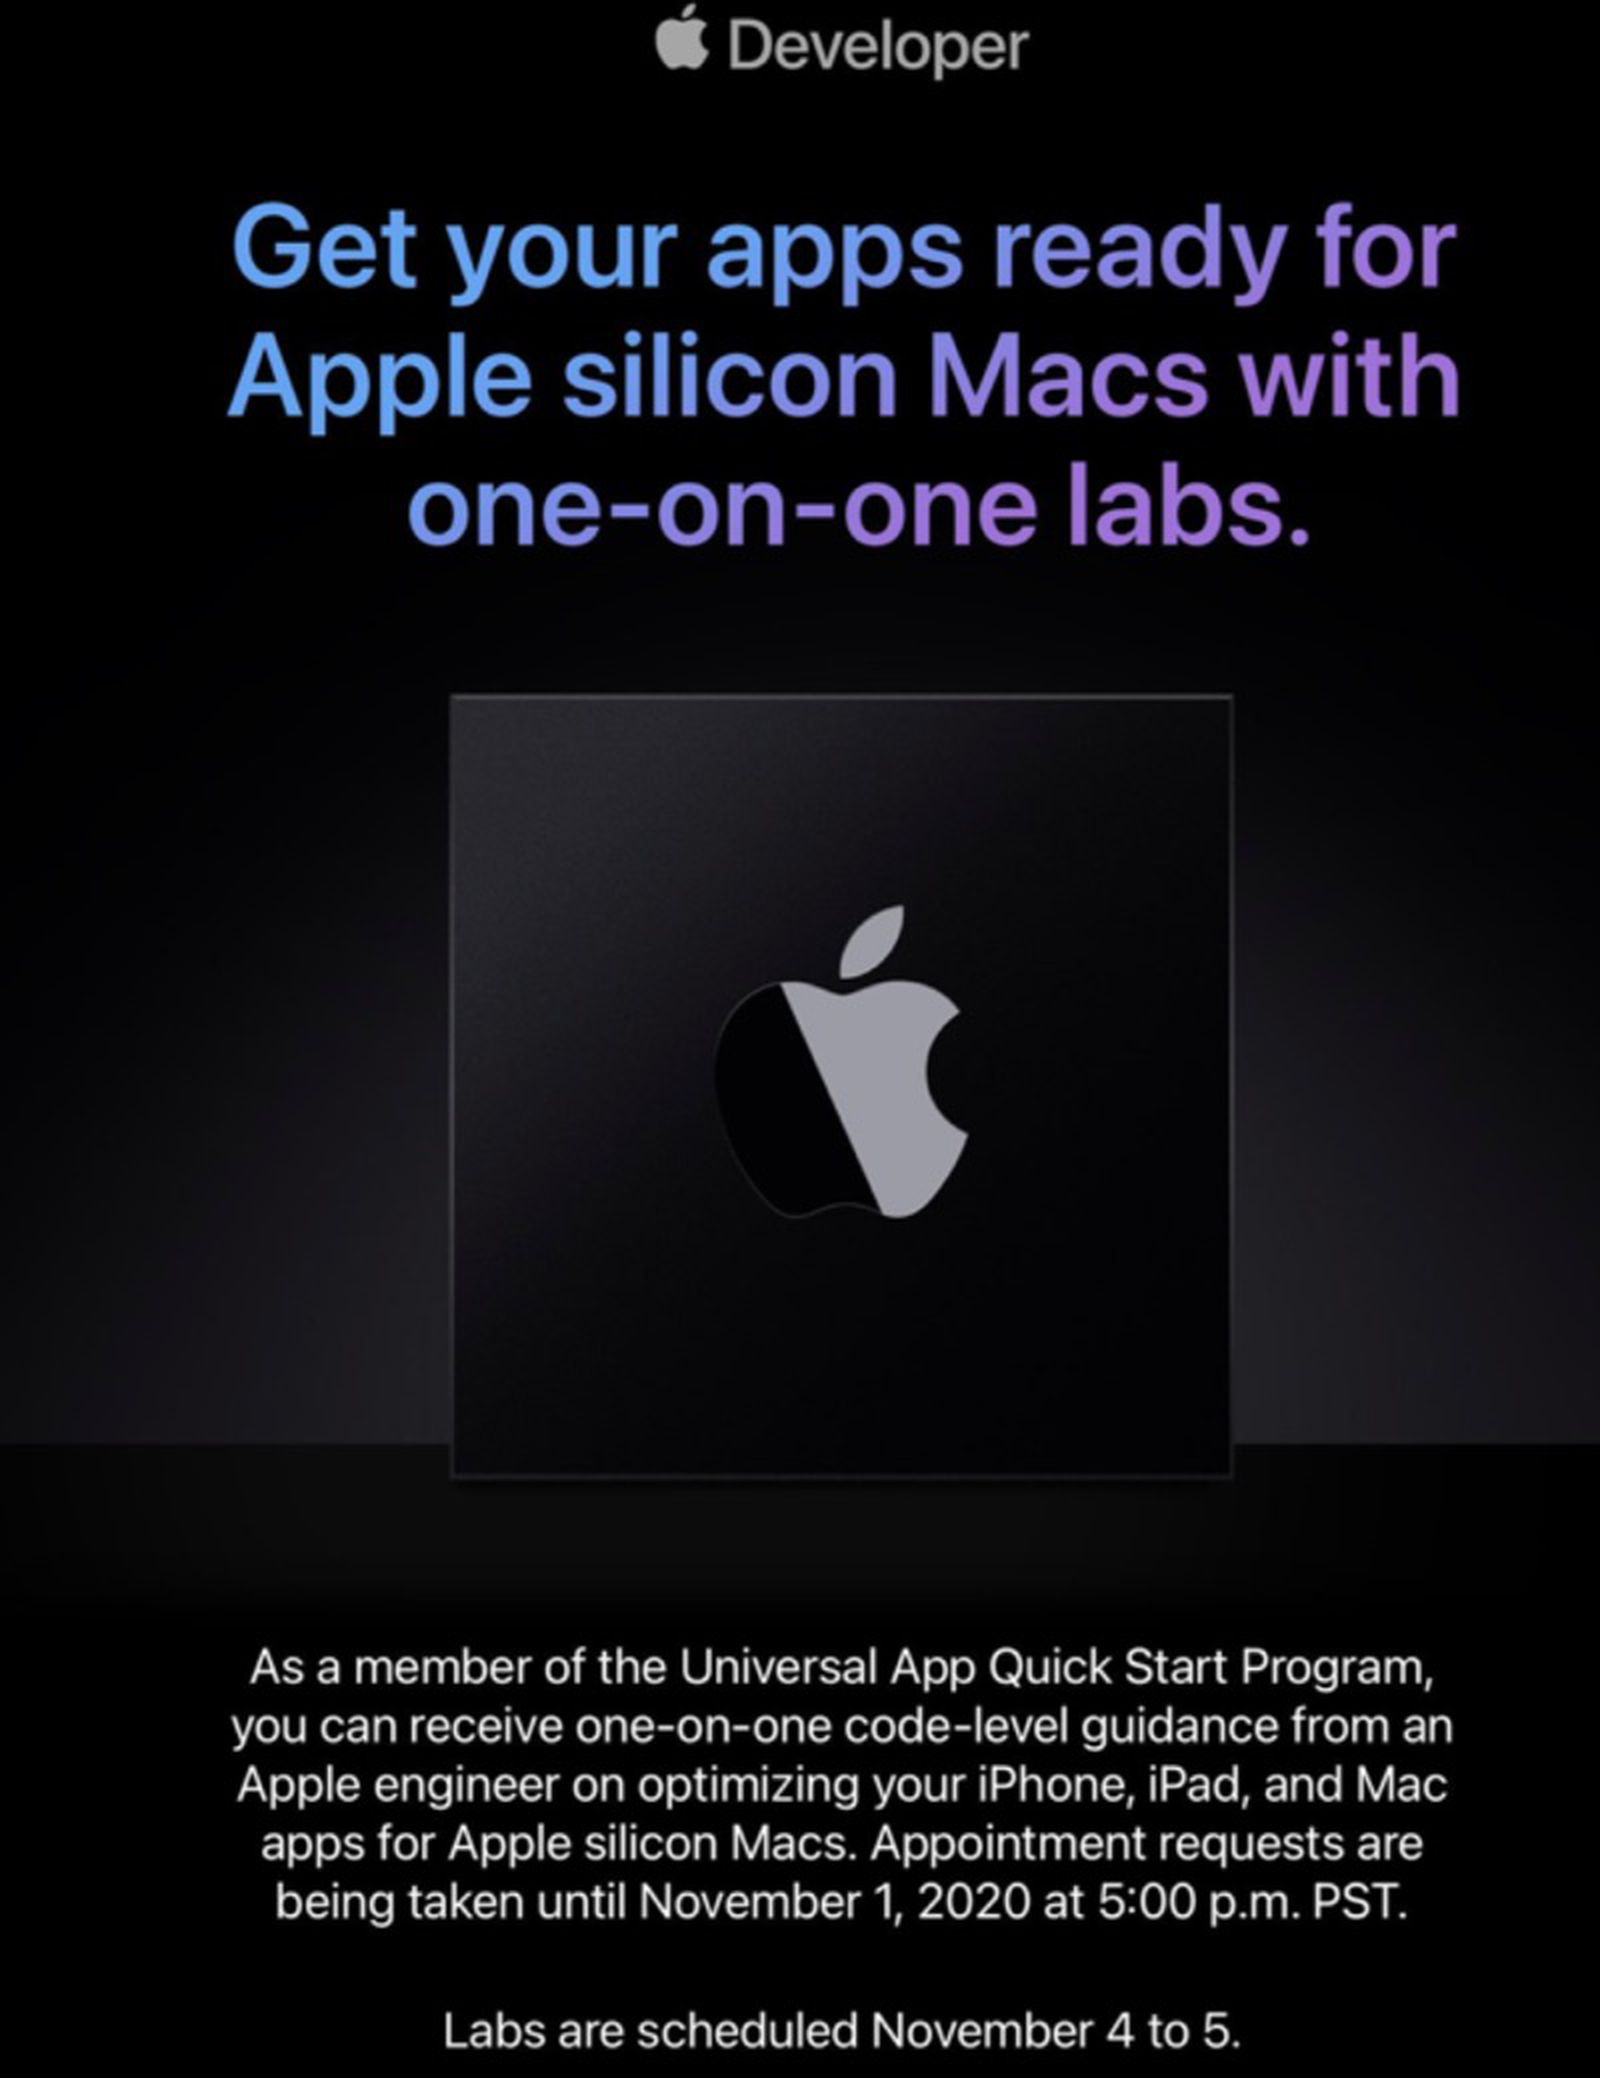 photo of Apple Invites Developers to Get One-on-One Guidance From Engineers Ahead of Apple Silicon Mac Launch image